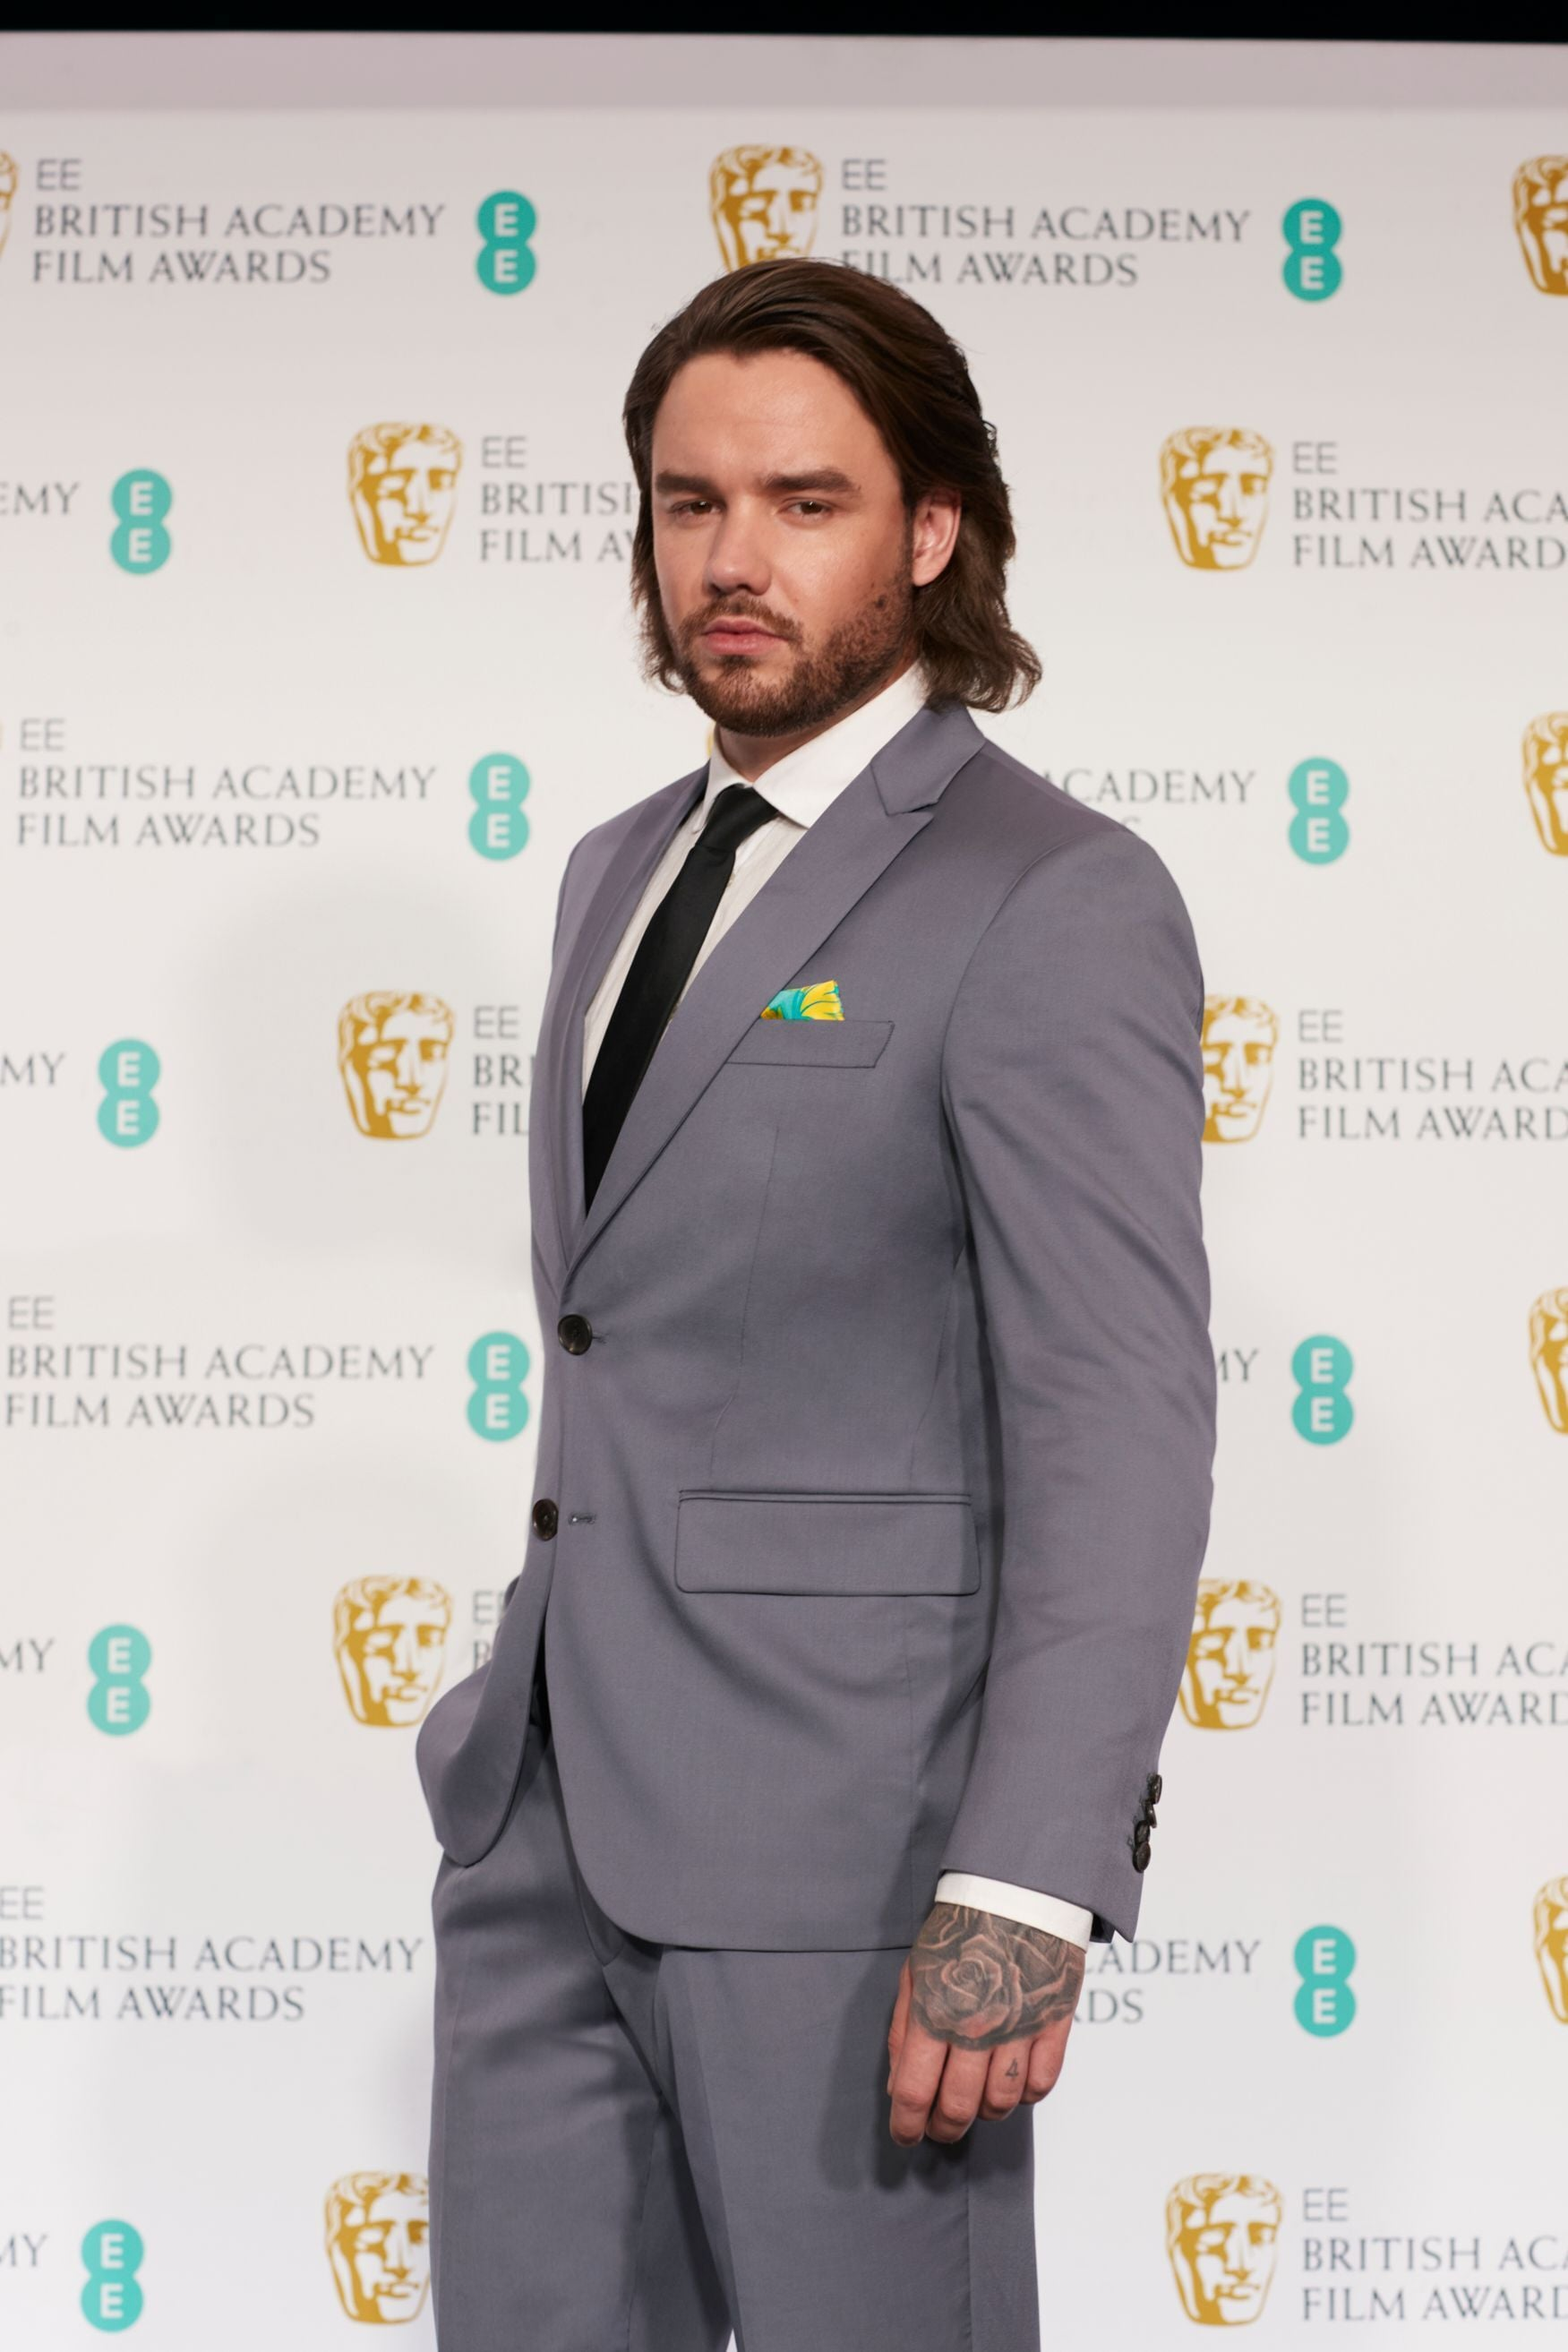 Mandatory Credit: Photo by EE/BAFTA/Shutterstock (11853528b)Sunday 11th April 2021, London: Tonight, Liam Payne opened the 2021 EE BAFTA Film Awards, with a spectacular performance that saw his avatar beamed onto the stage of Royal Albert Hall as a hologram, powered by EEs 5G award-winning network. Ahead of the ceremony, EE brought fans closer to the action giving them the first-look in an exclusive AR pre-show, made for mobile.74th British Academy Film Awards, Arrivals, Royal Albert Hall, London, UK - 11 Apr 2021